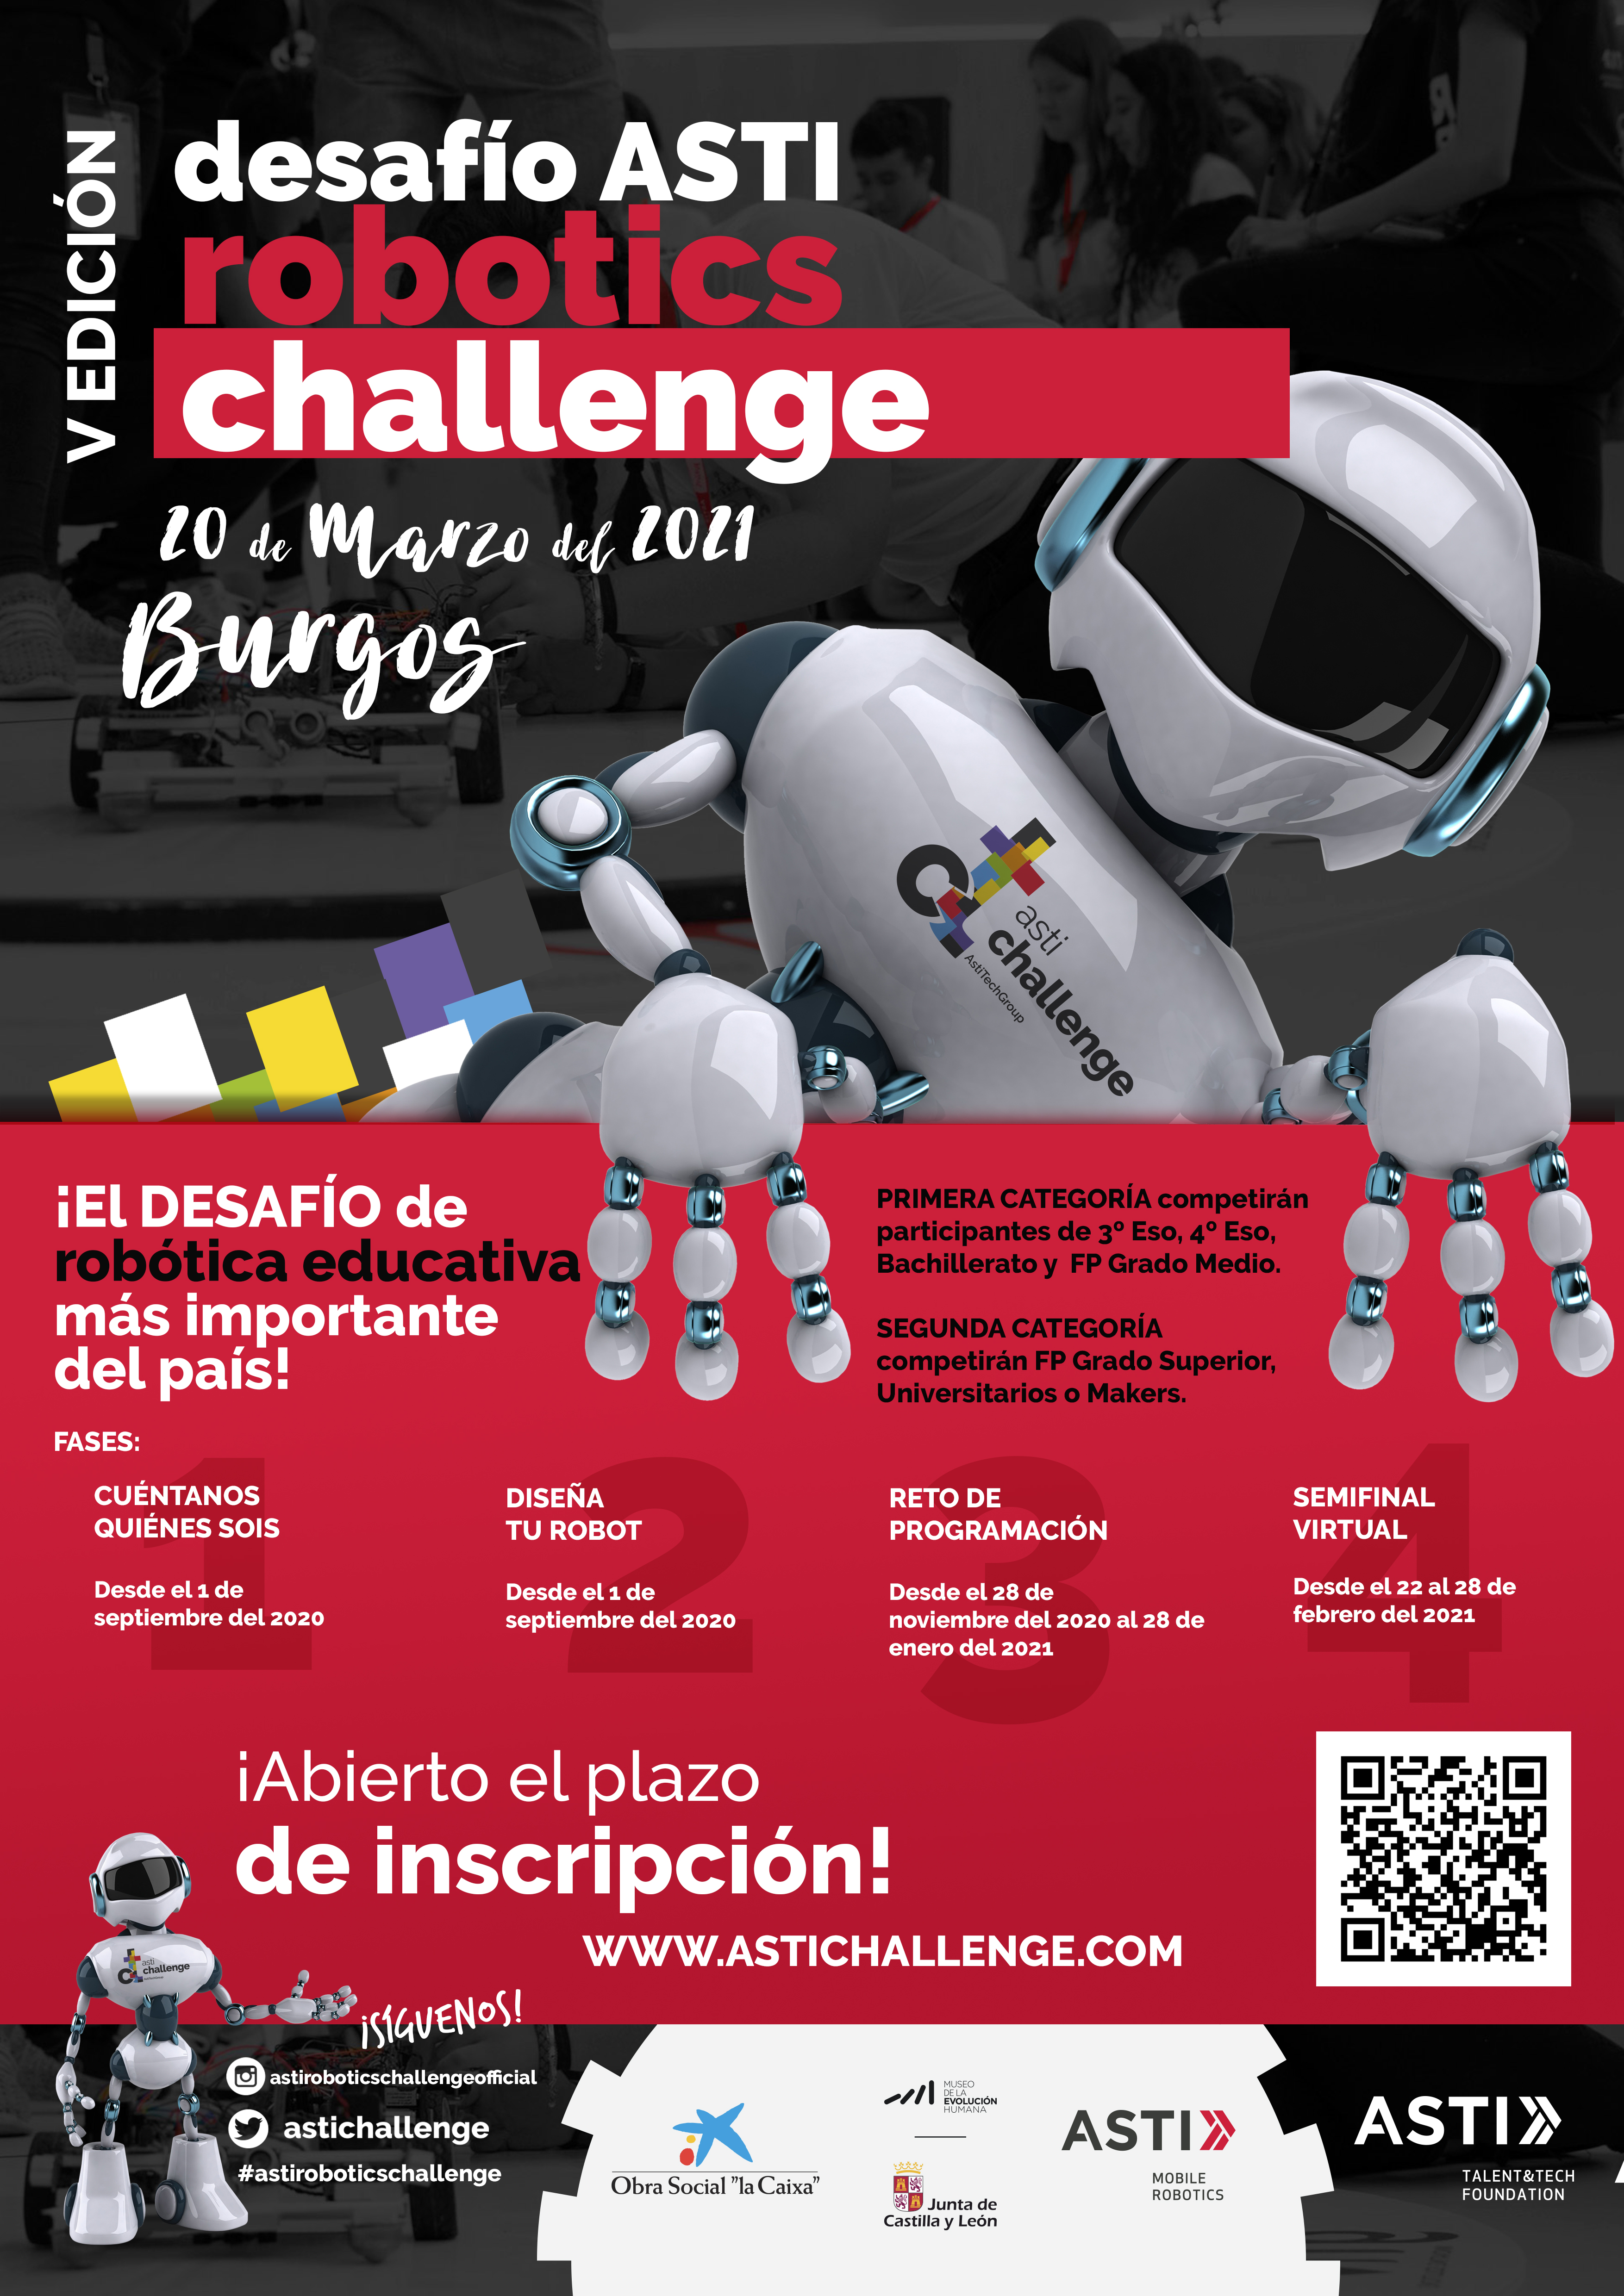 We're accepting applications for the new edition of ASTI Robotics Challenge